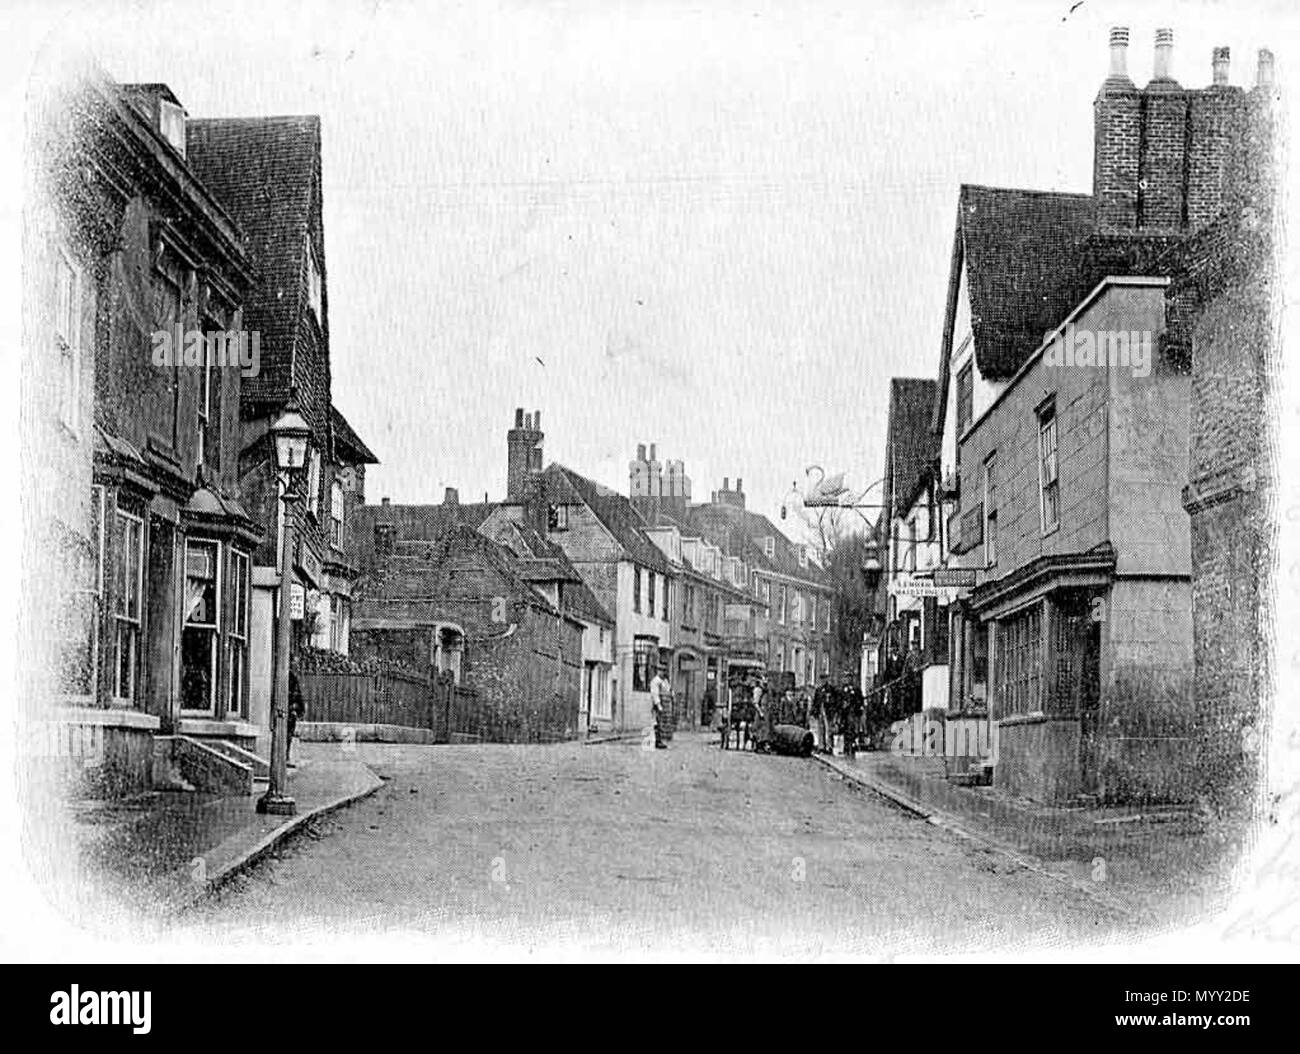 . English: Charing High Street, Charing, Kent, c1905. View taken looking north up the High Street. From a black and white postcard c1905, no printer's or photographer's name. It looks similar to today, as not much change has occurred in the last 100 years in the village.  . 19 November 2005 (original upload date). The original uploader was Humansdorpie at English Wikipedia 48 High Street, Charing, Kent, c1905 - Stock Image